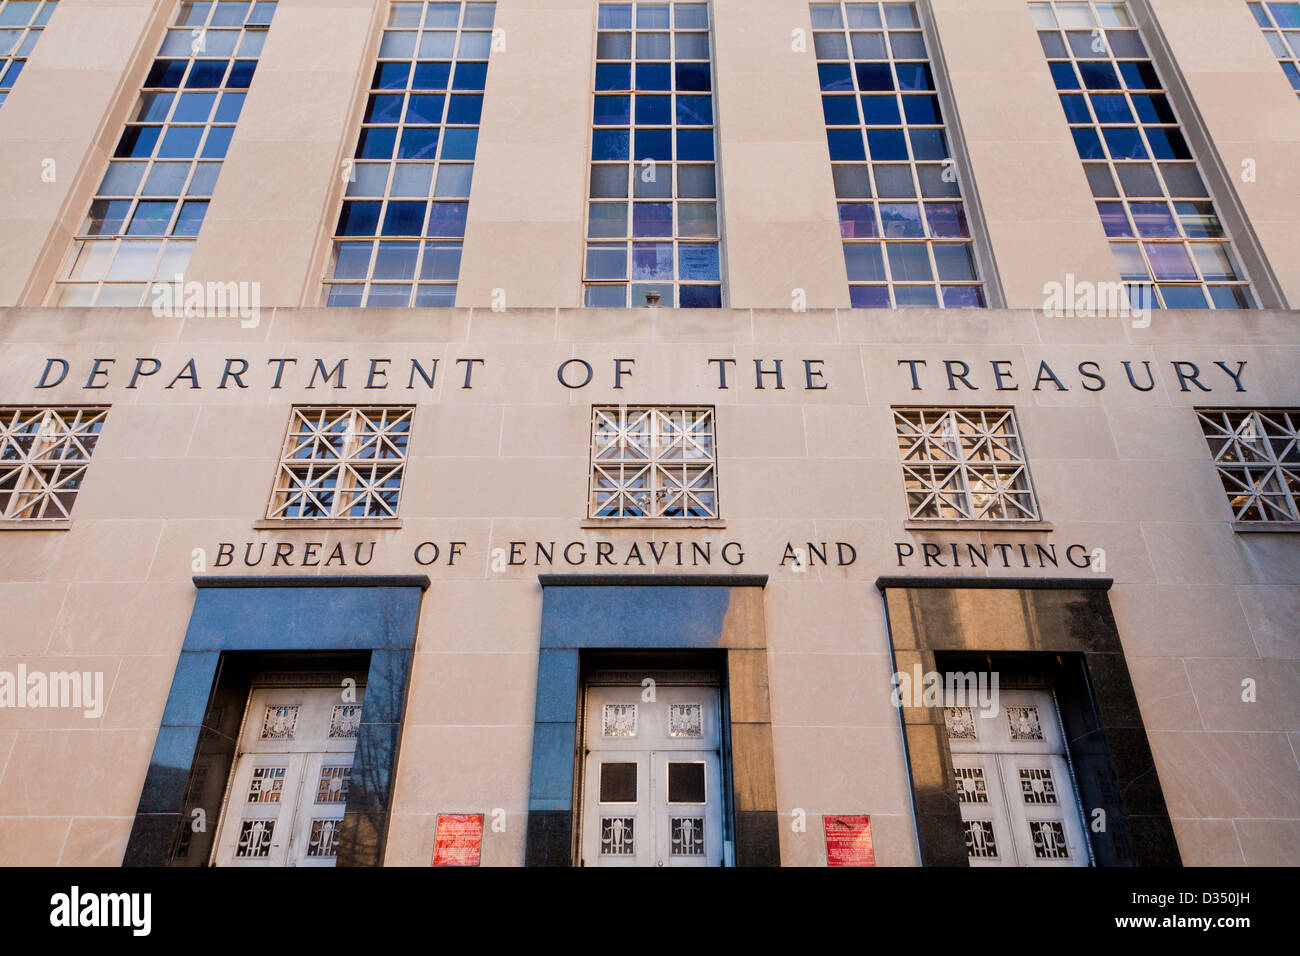 Bureau of Engraving and Printing - Department of the Treasury building, Washington, DC - Stock Image